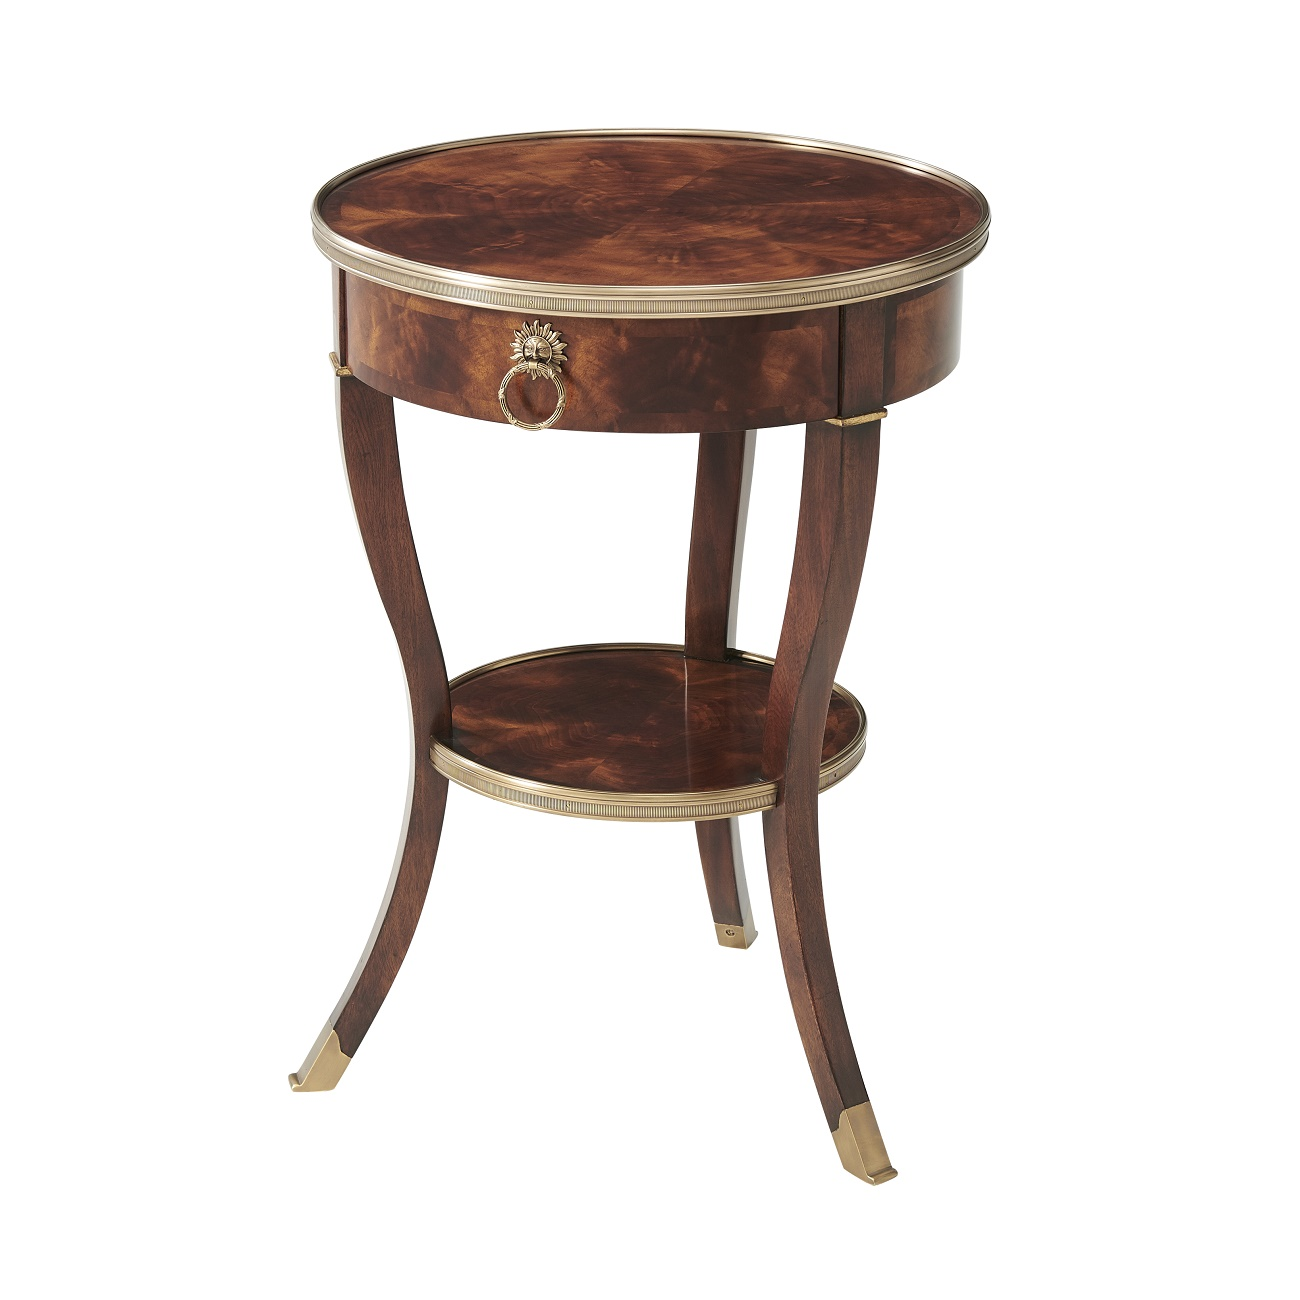 Theodore Alexander Around In Circles Accent Lamp Table Brooklyn, New York